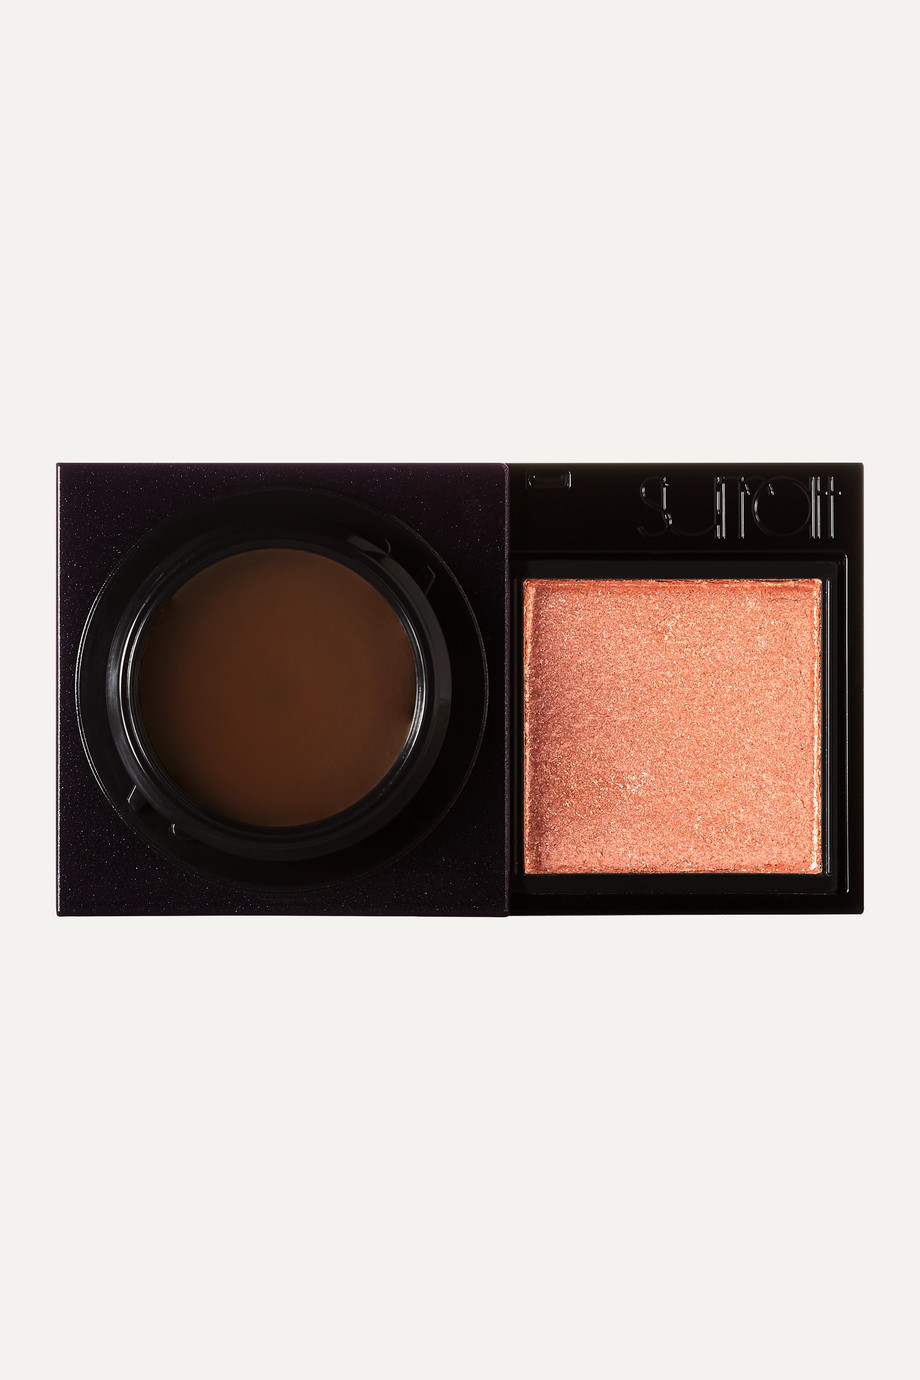 Surratt Beauty Prismatique Eyes - Neutral Eyes